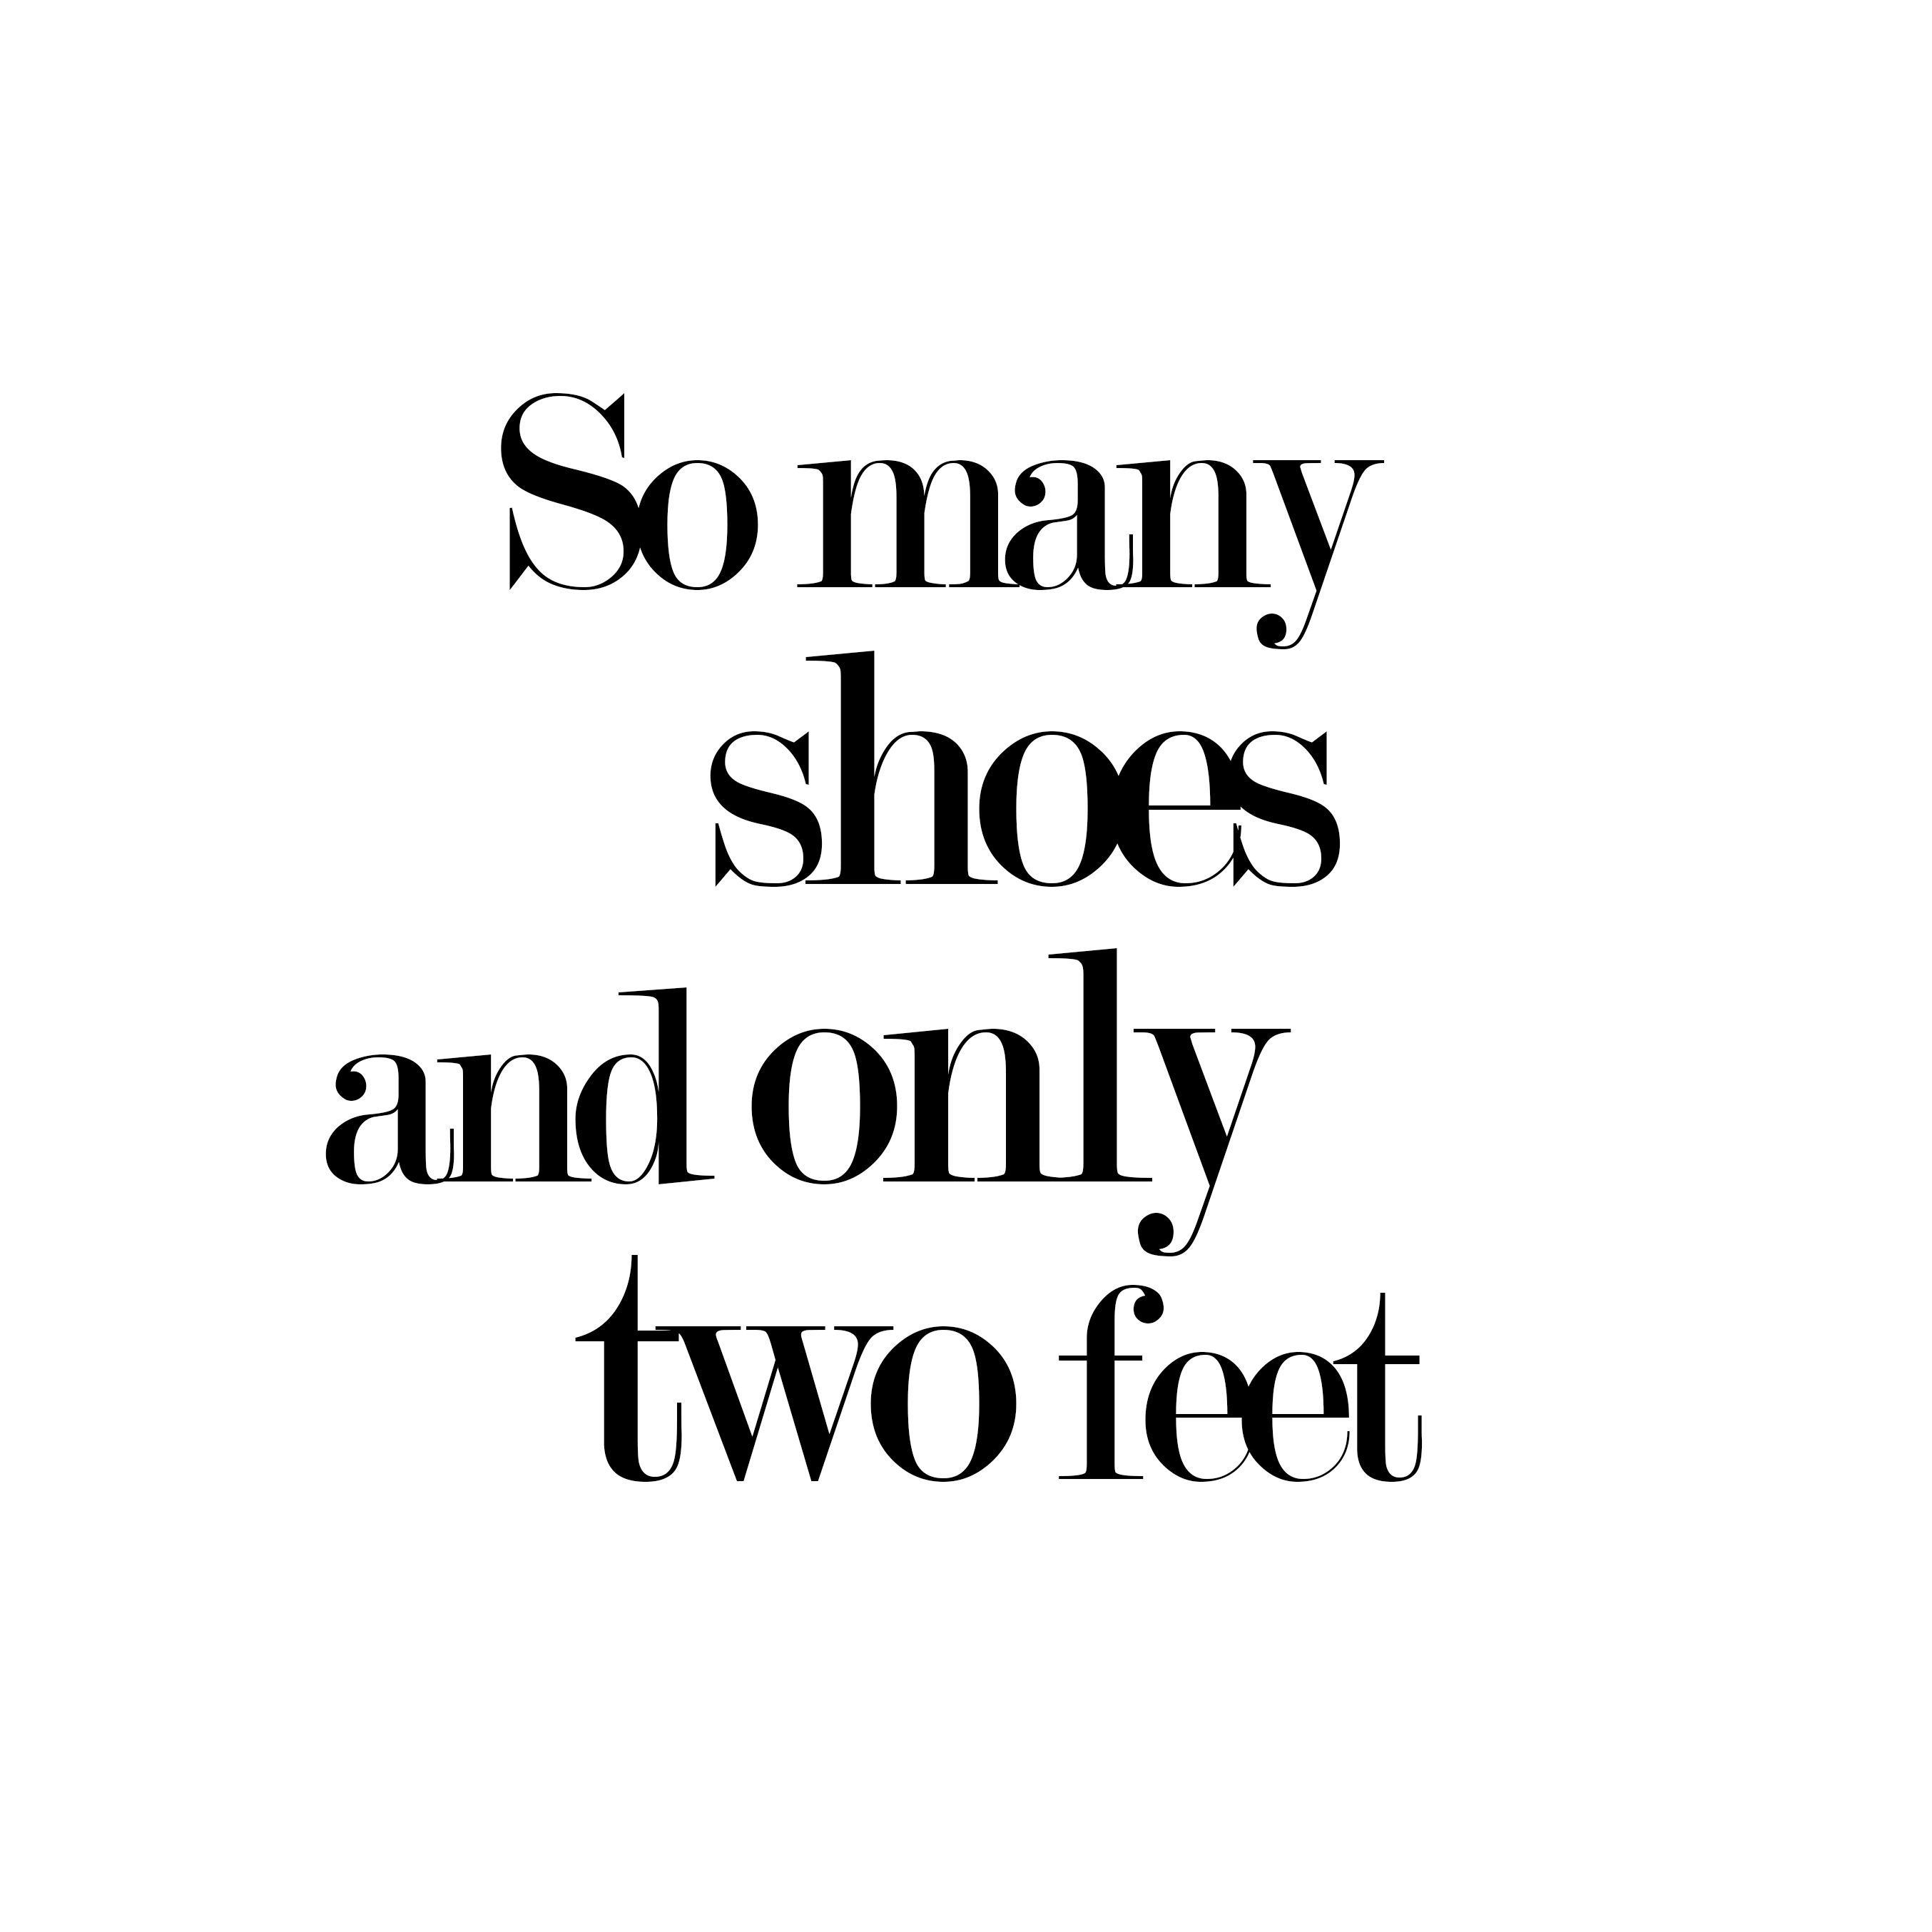 200 Shoe Quotes For Shoe Lovers Ideas In 2020 Quotes Shoes Quotes Fashion Quotes